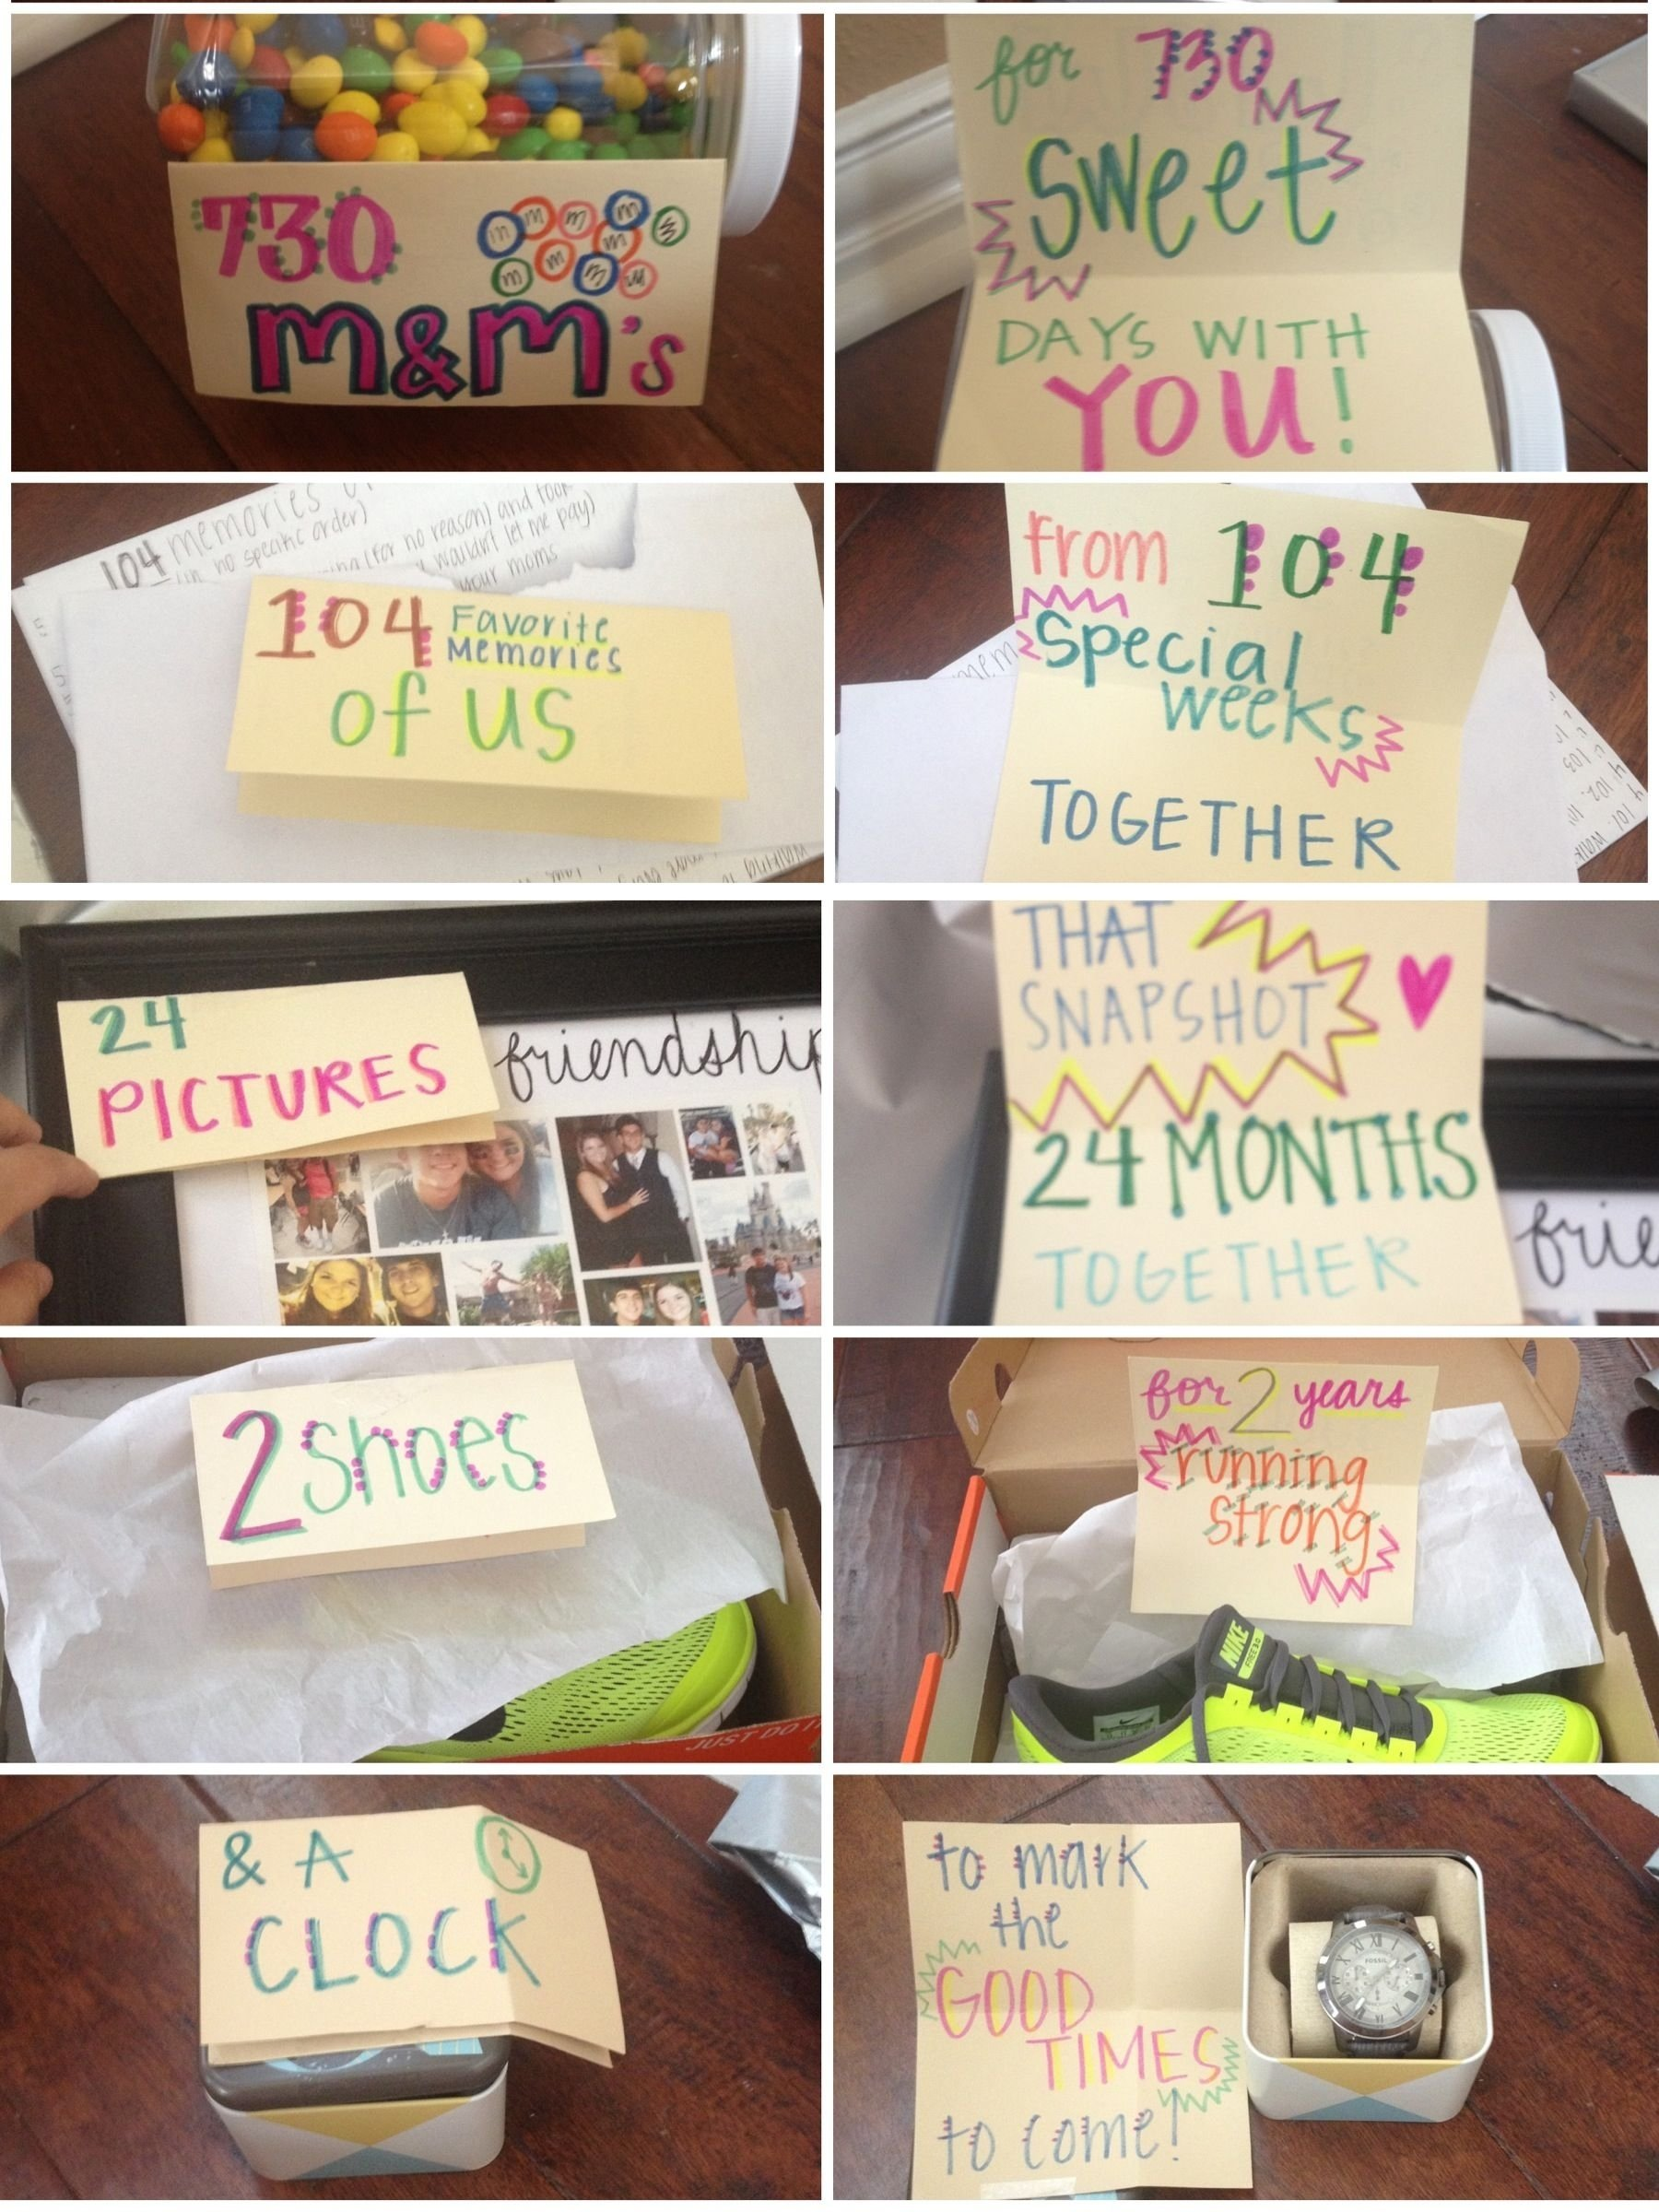 10 Wonderful Fun Anniversary Ideas For Him even though the two years has passed i could use this for 4 2021